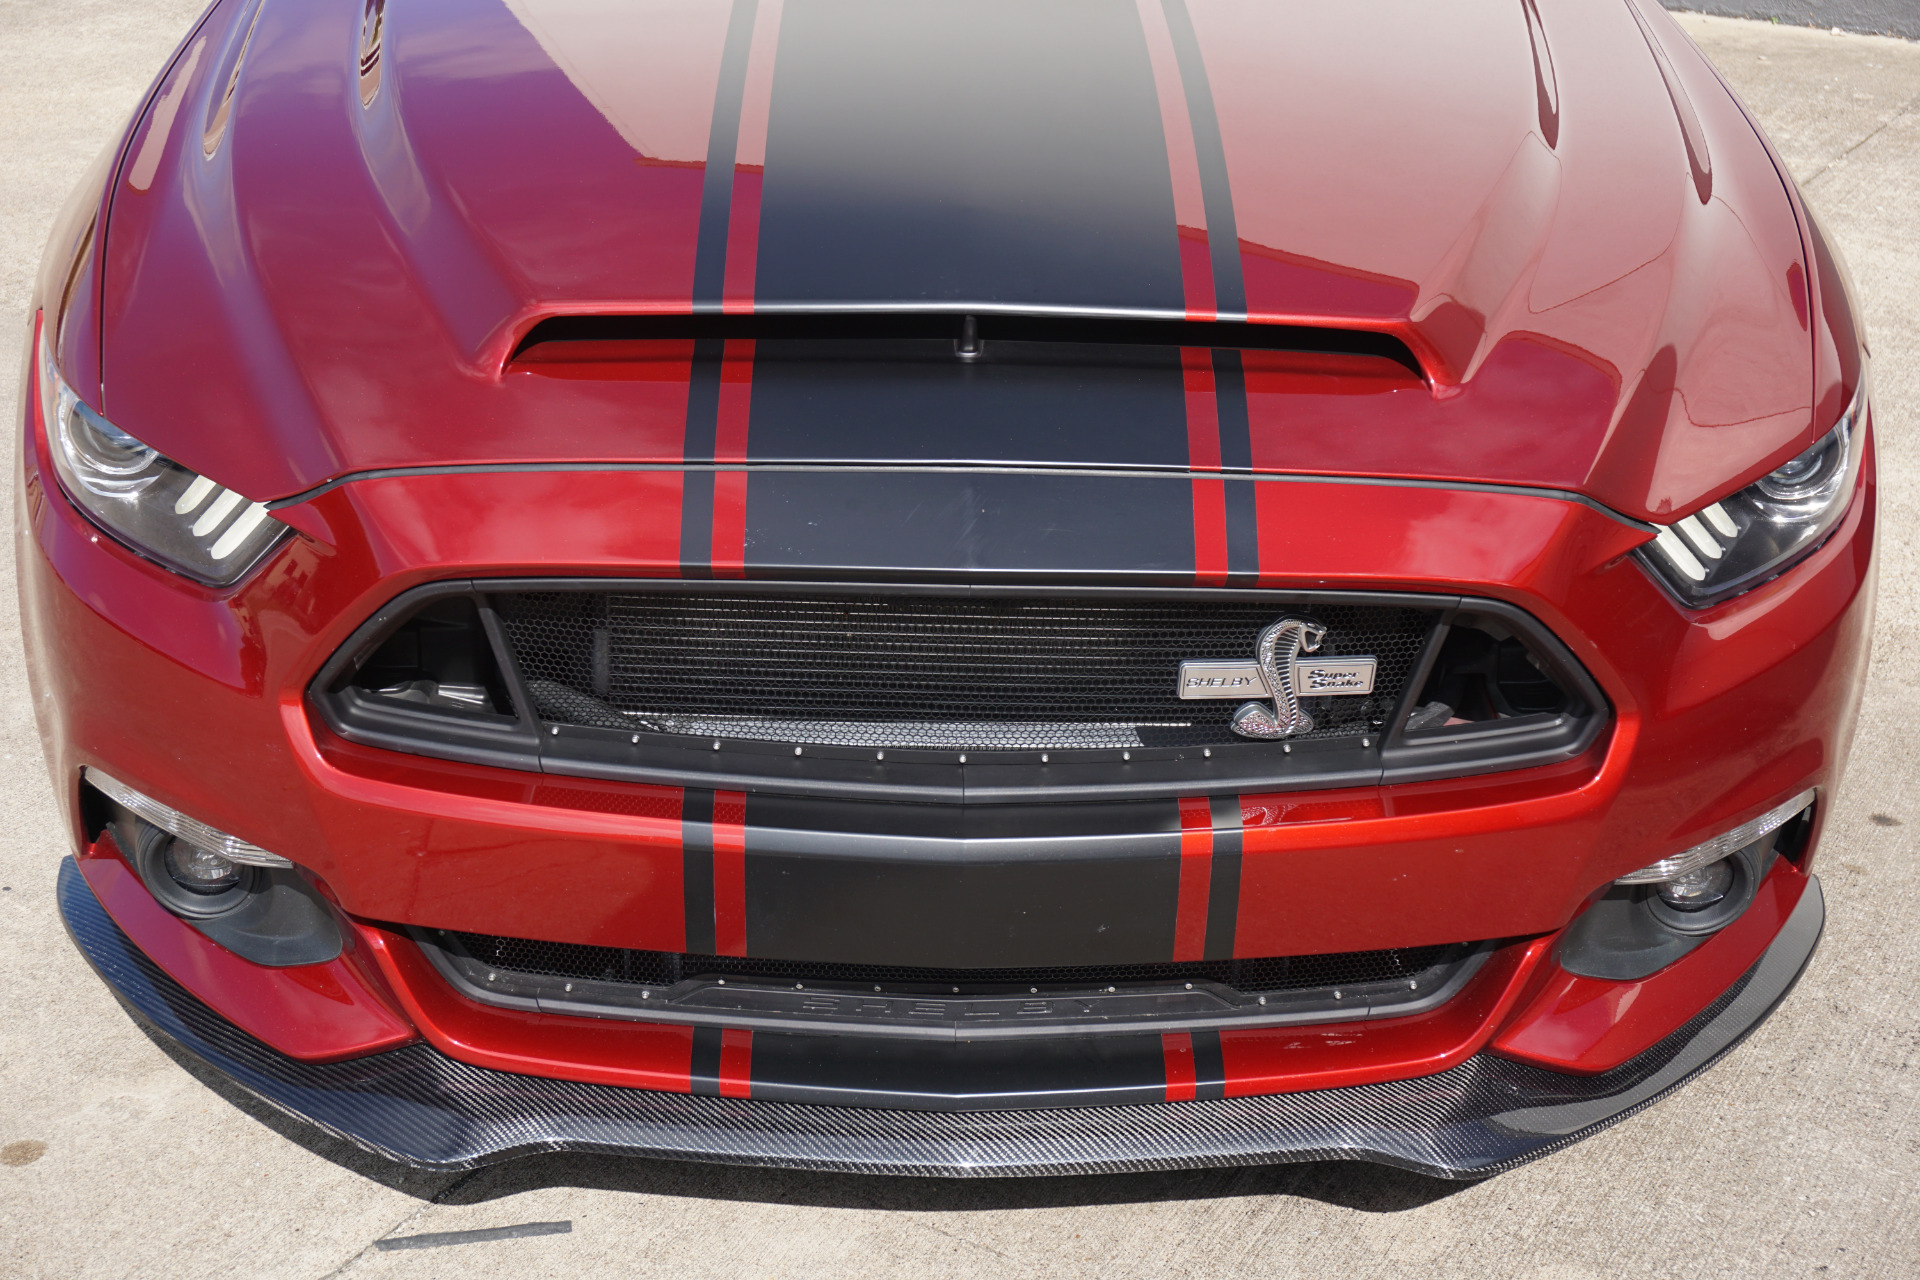 Used 2015 ford mustang supersnake concept car